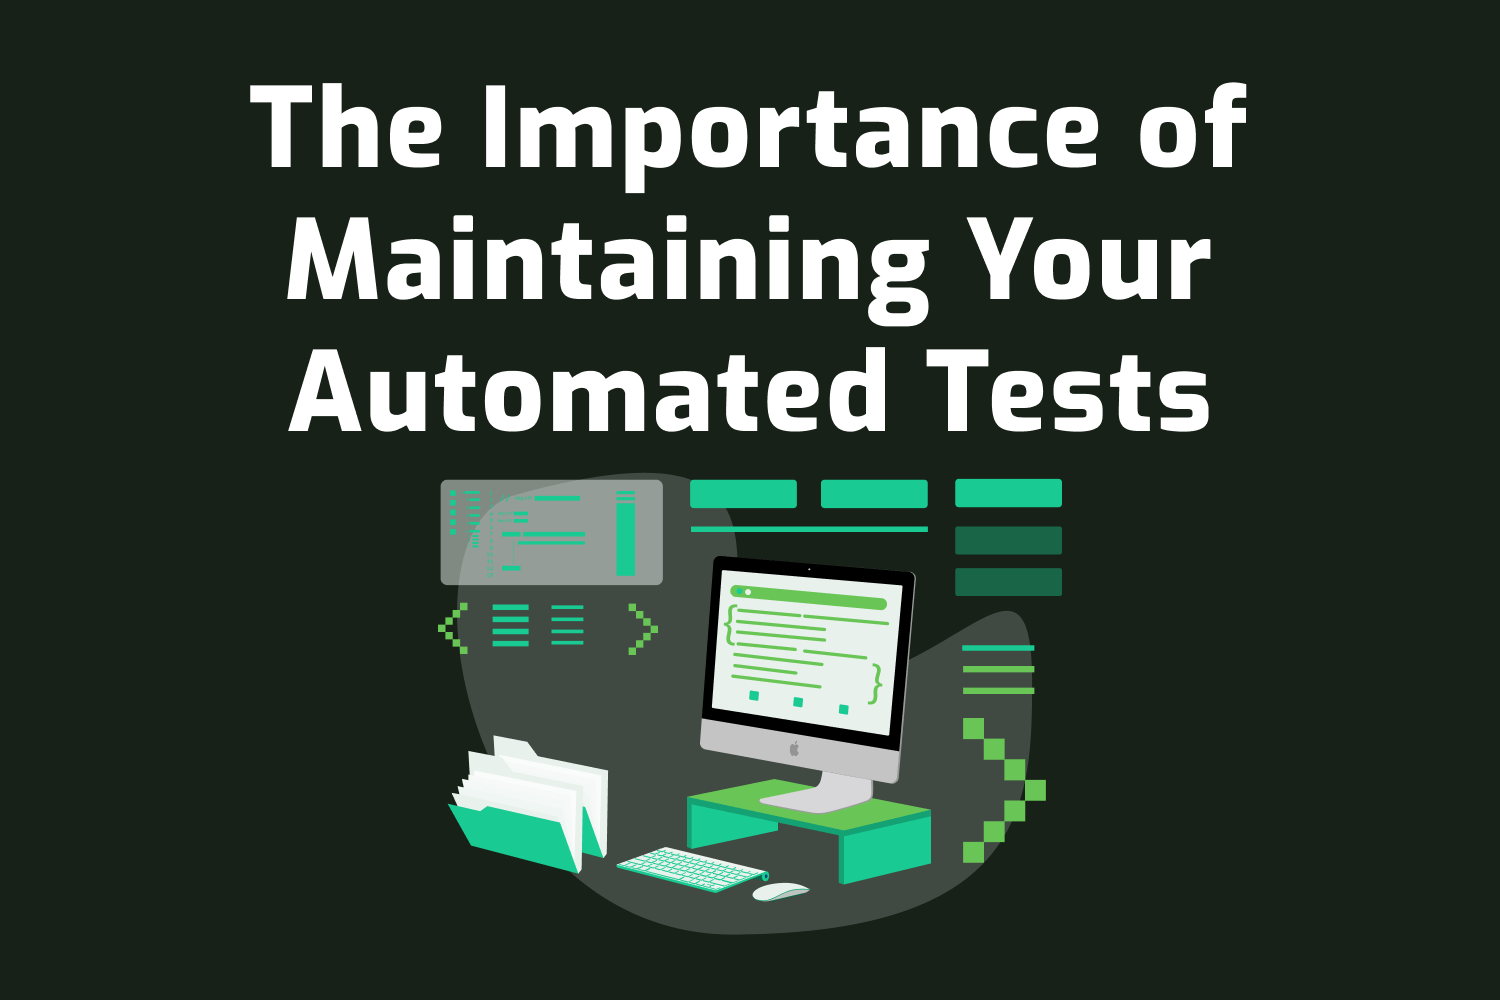 The Importance of Maintaining Your Automated Tests